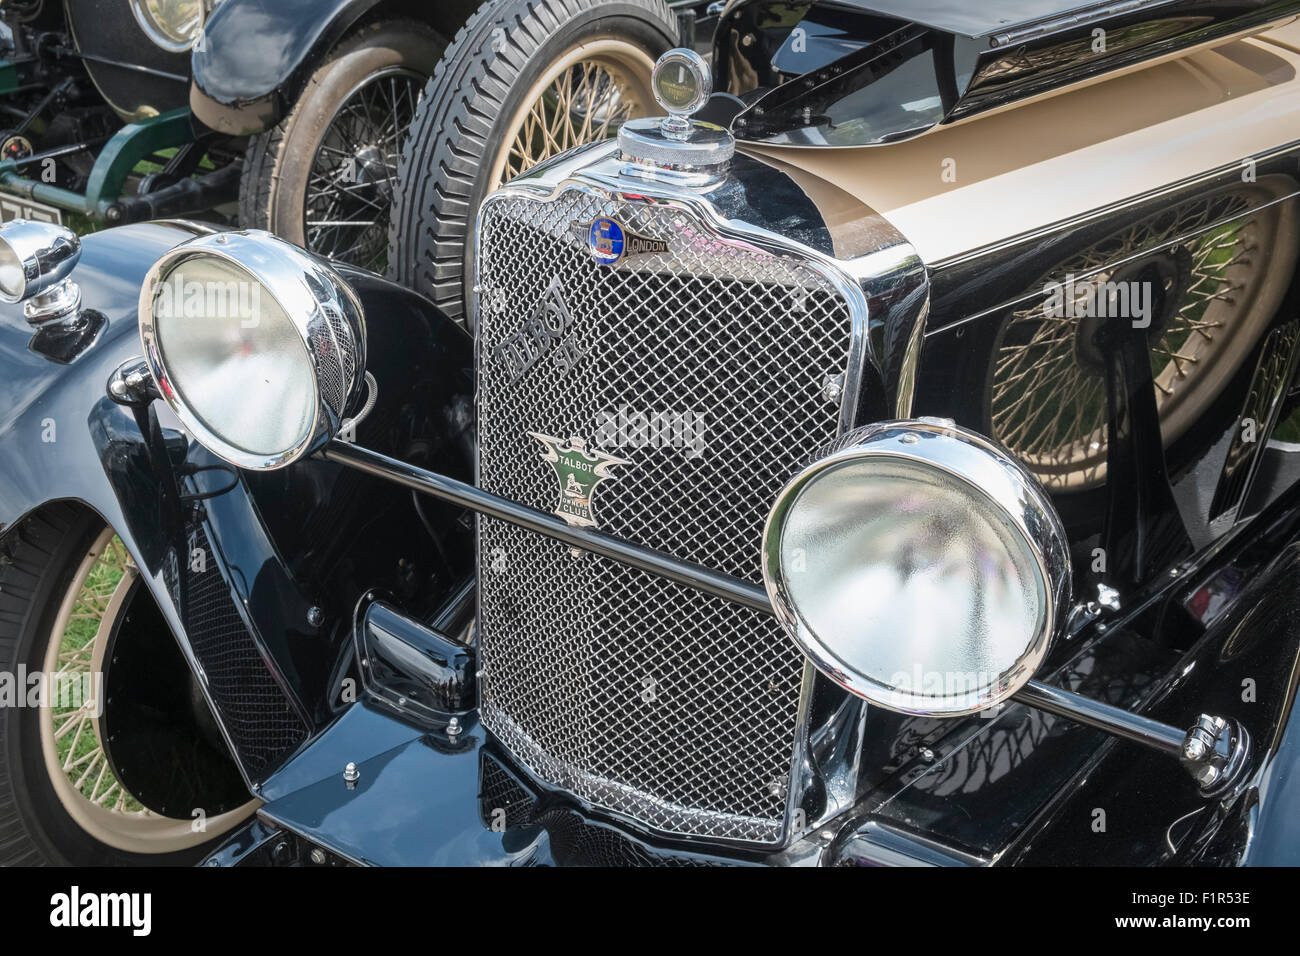 Talbot-London 6 classic vintage car grille and headlamps, England UK - Stock Image